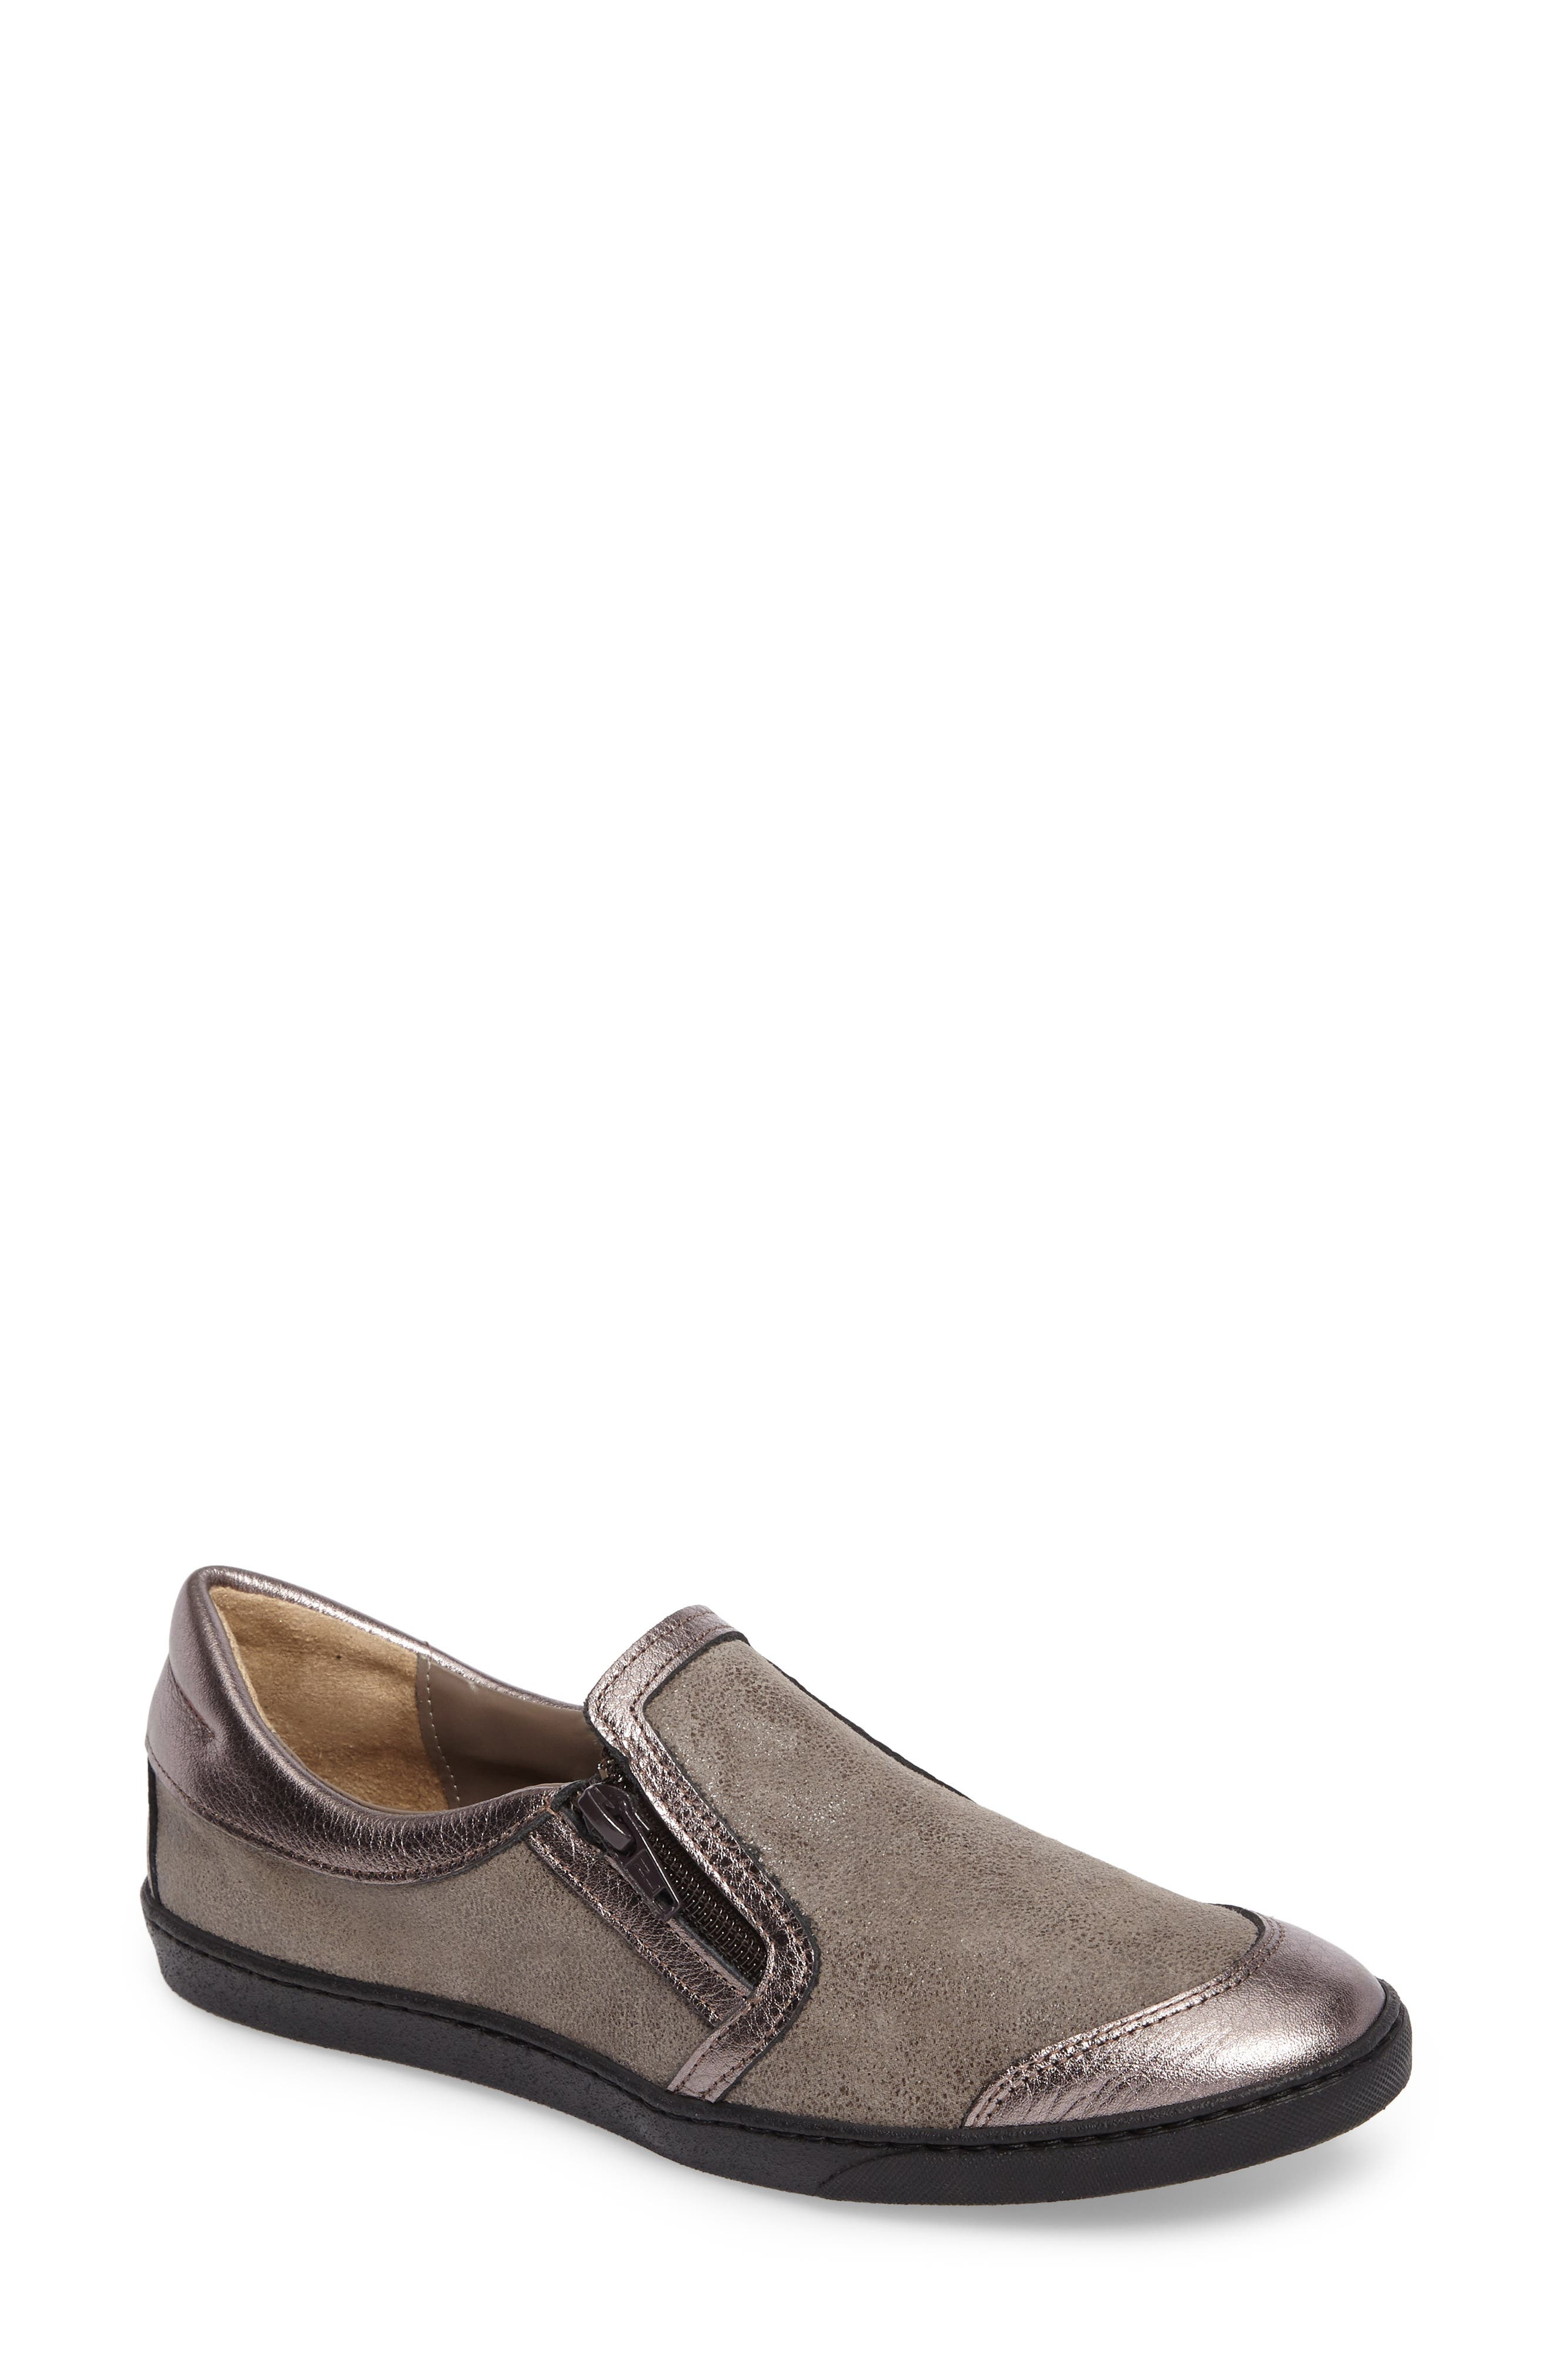 Fiorin Slip-On Sneaker,                         Main,                         color, Taupe Fabric